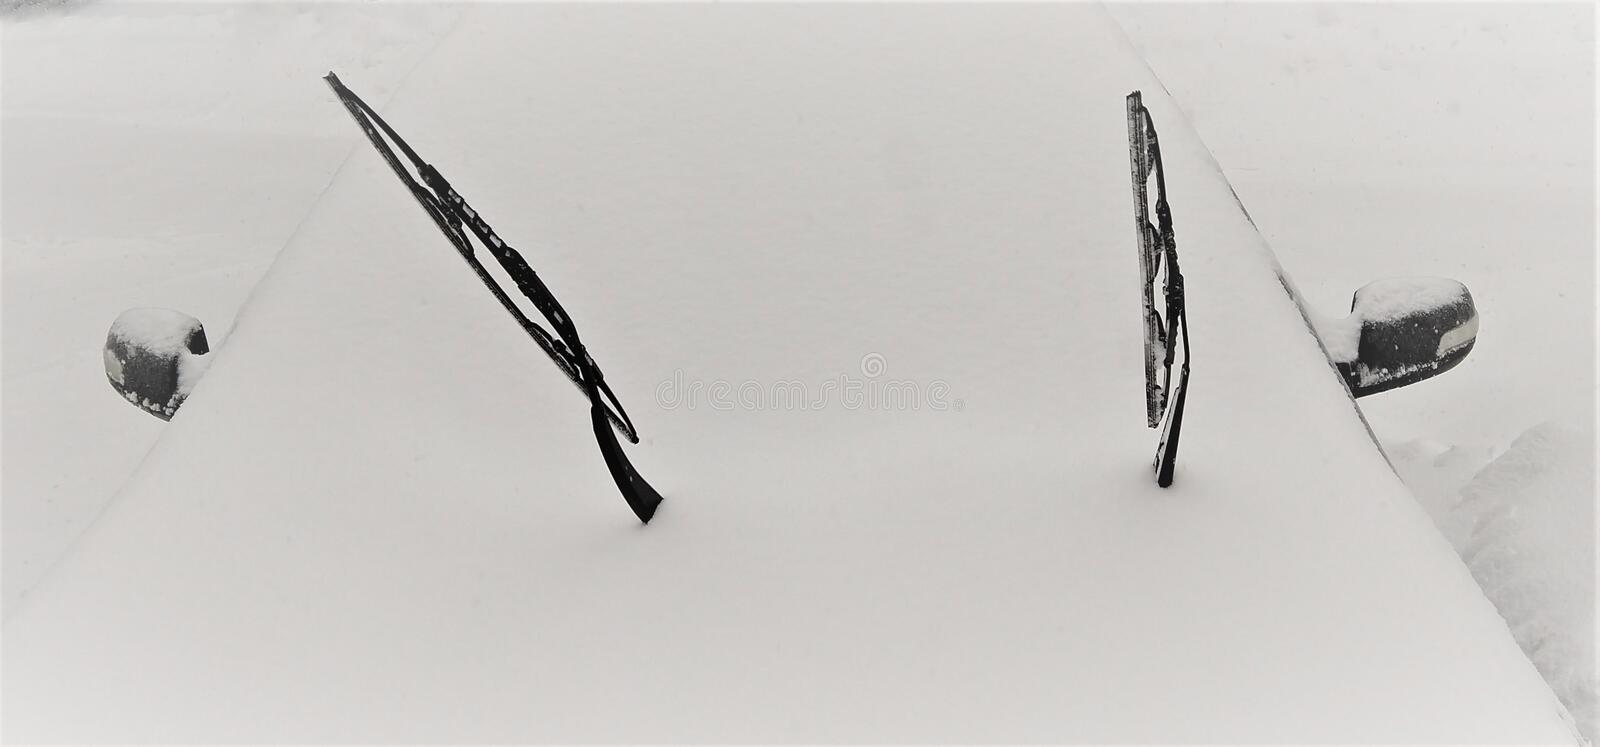 Windshield wipers preparation for Northeast Winter Storm royalty free stock photos